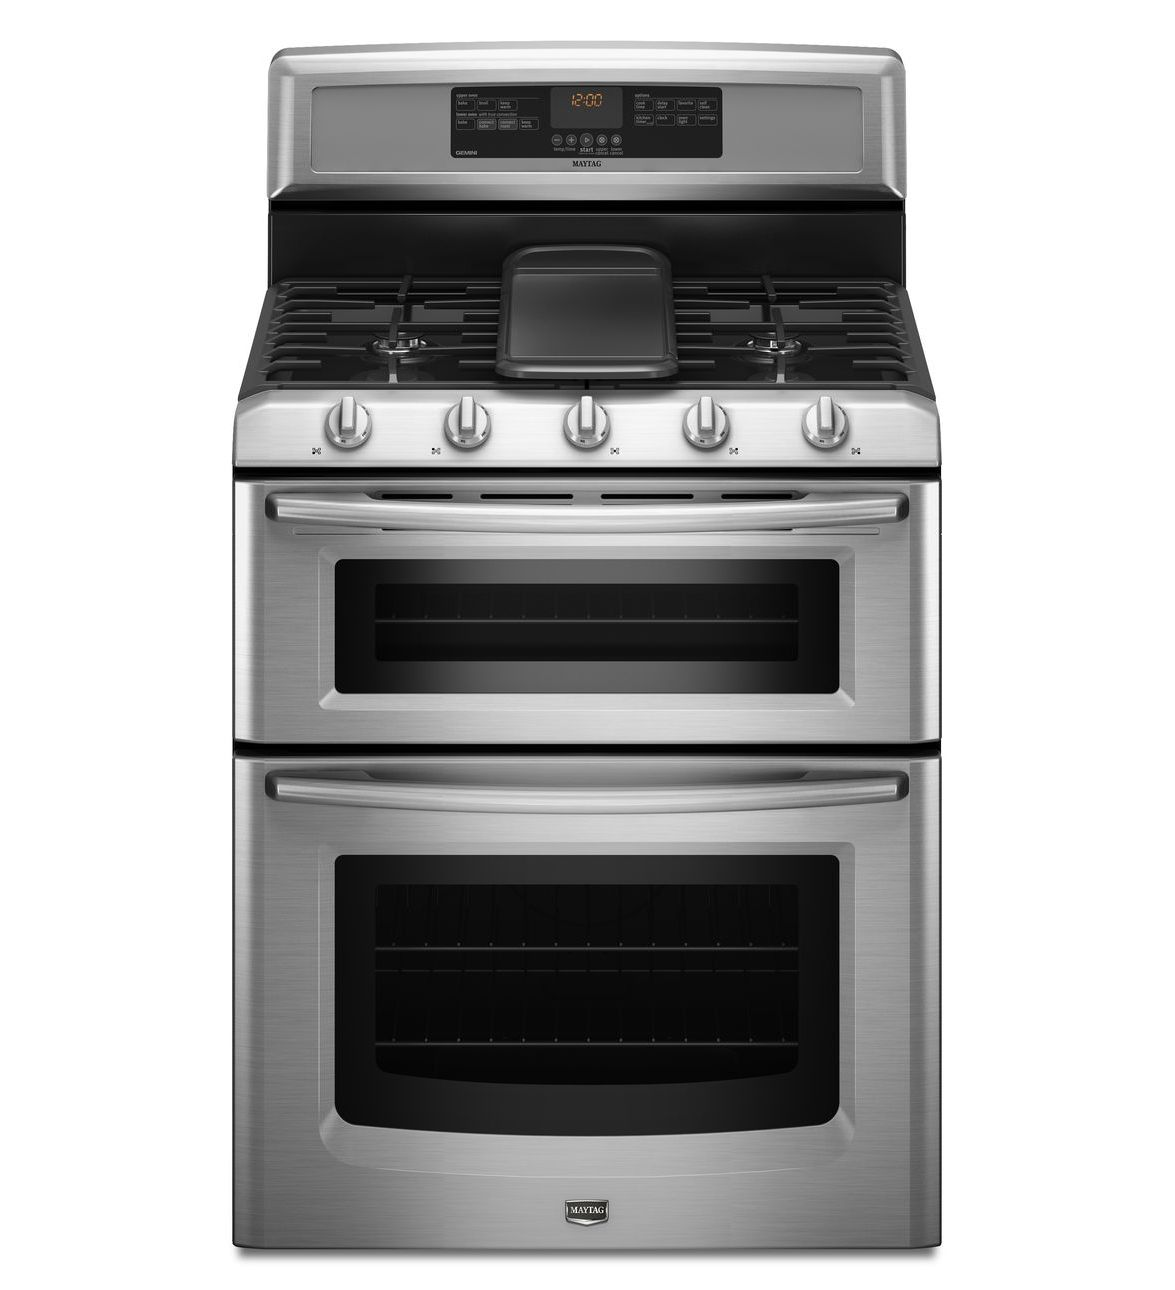 The Maytag Gemini Double Oven Makes Dinner For Twelve A Job One Home Liances Kitchen Laundry In Lafayette 47905